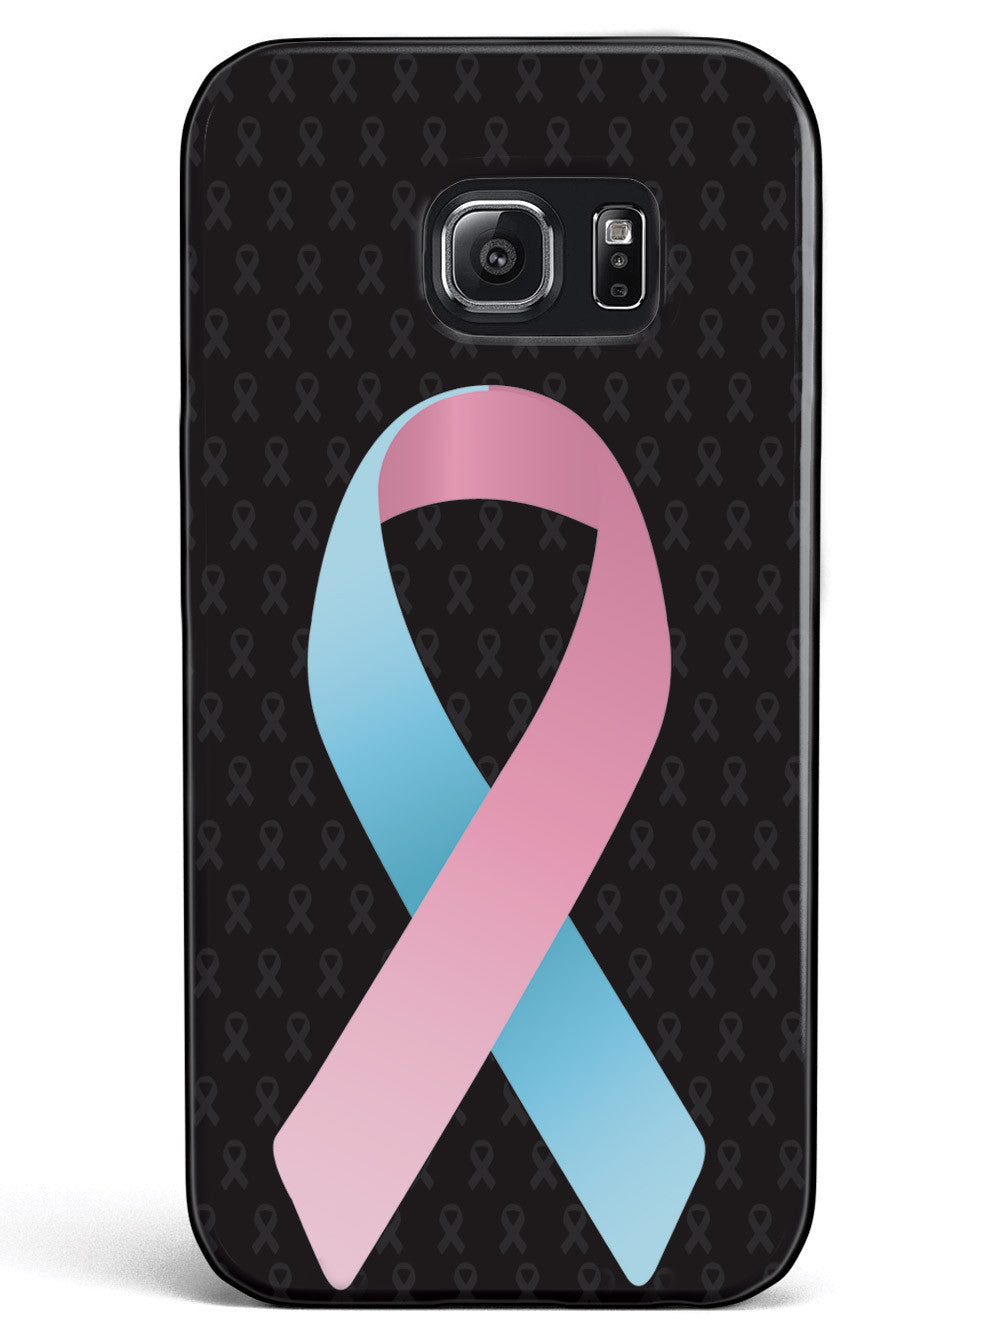 Light Pink and Light Blue Awareness Ribbon - Black Case